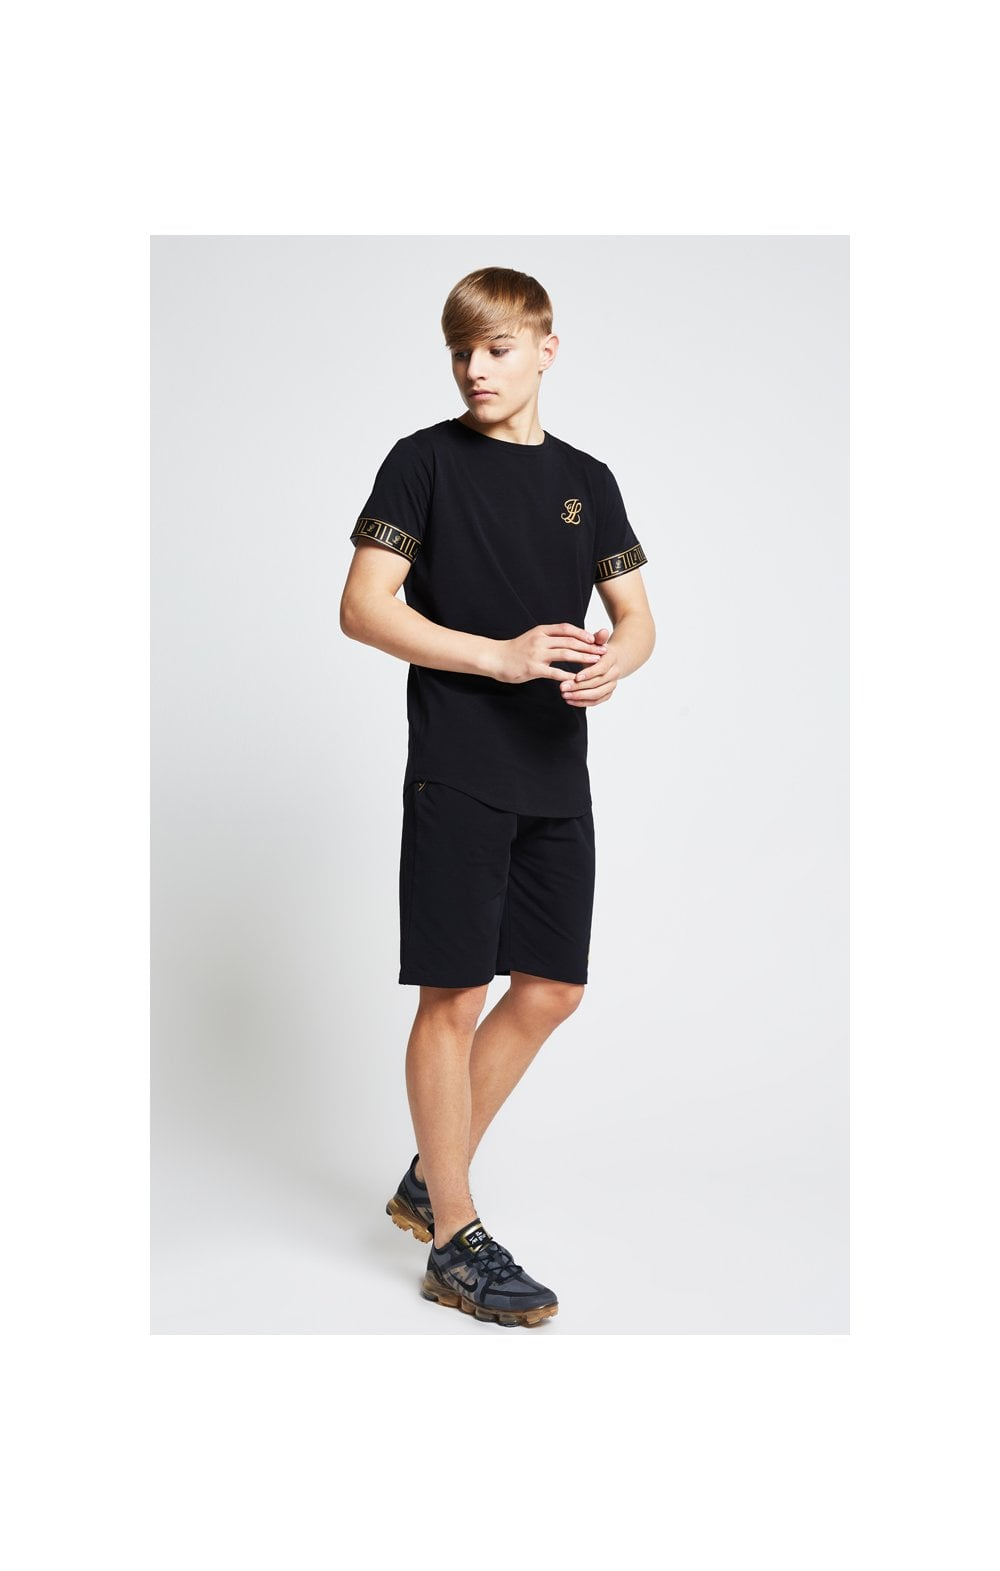 Illusive London Tape Jersey Shorts - Black (5)